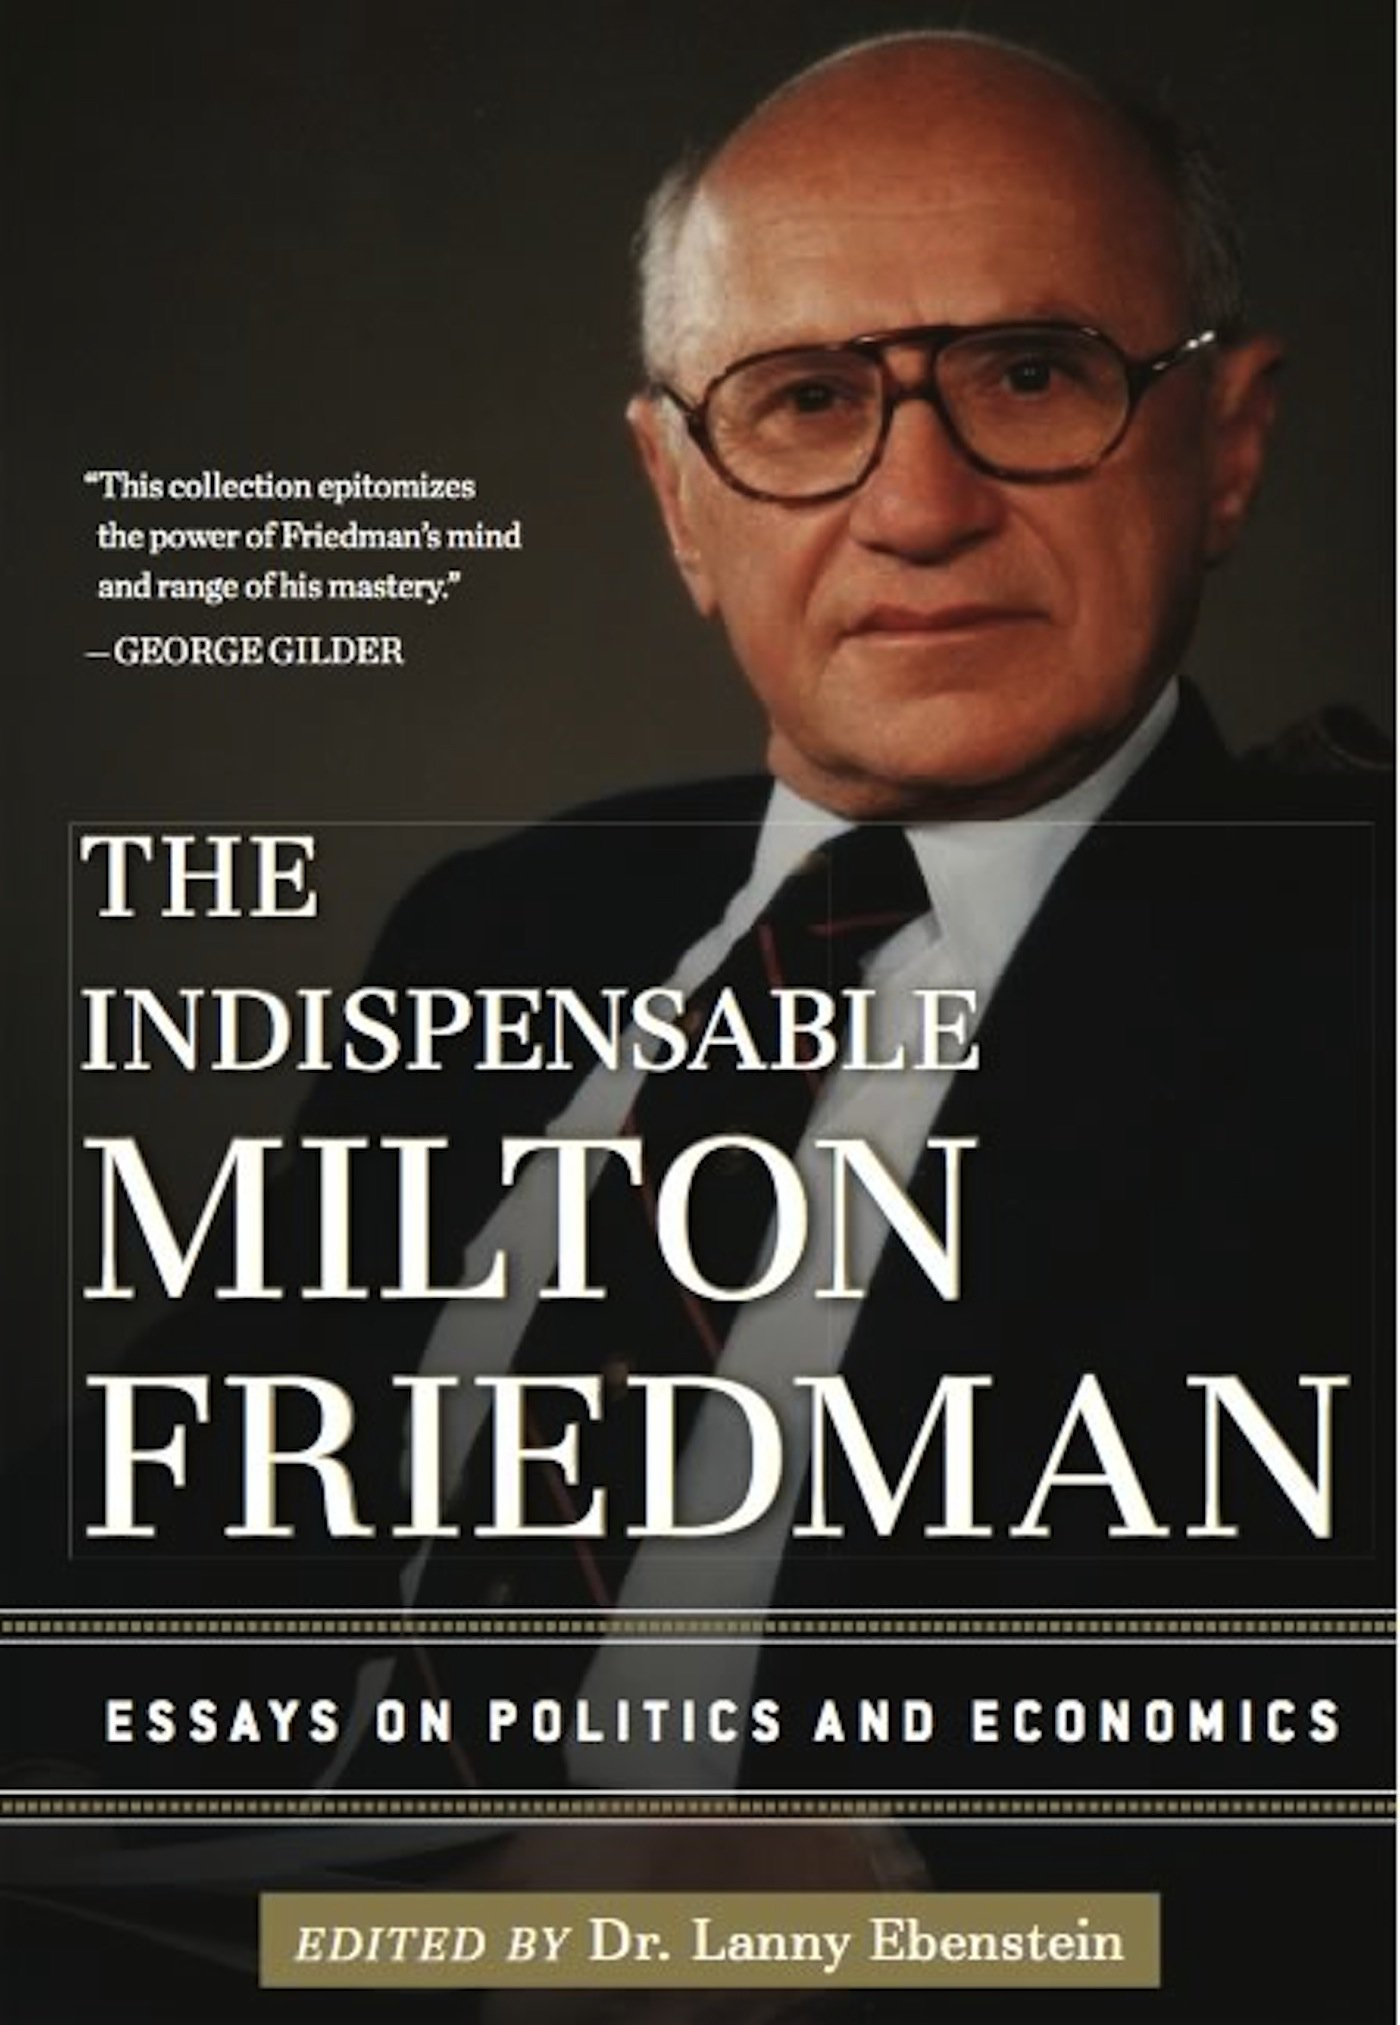 the indispensable milton friedman essays on politics and the indispensable milton friedman essays on politics and economics lanny ebenstein 9781596988088 com books